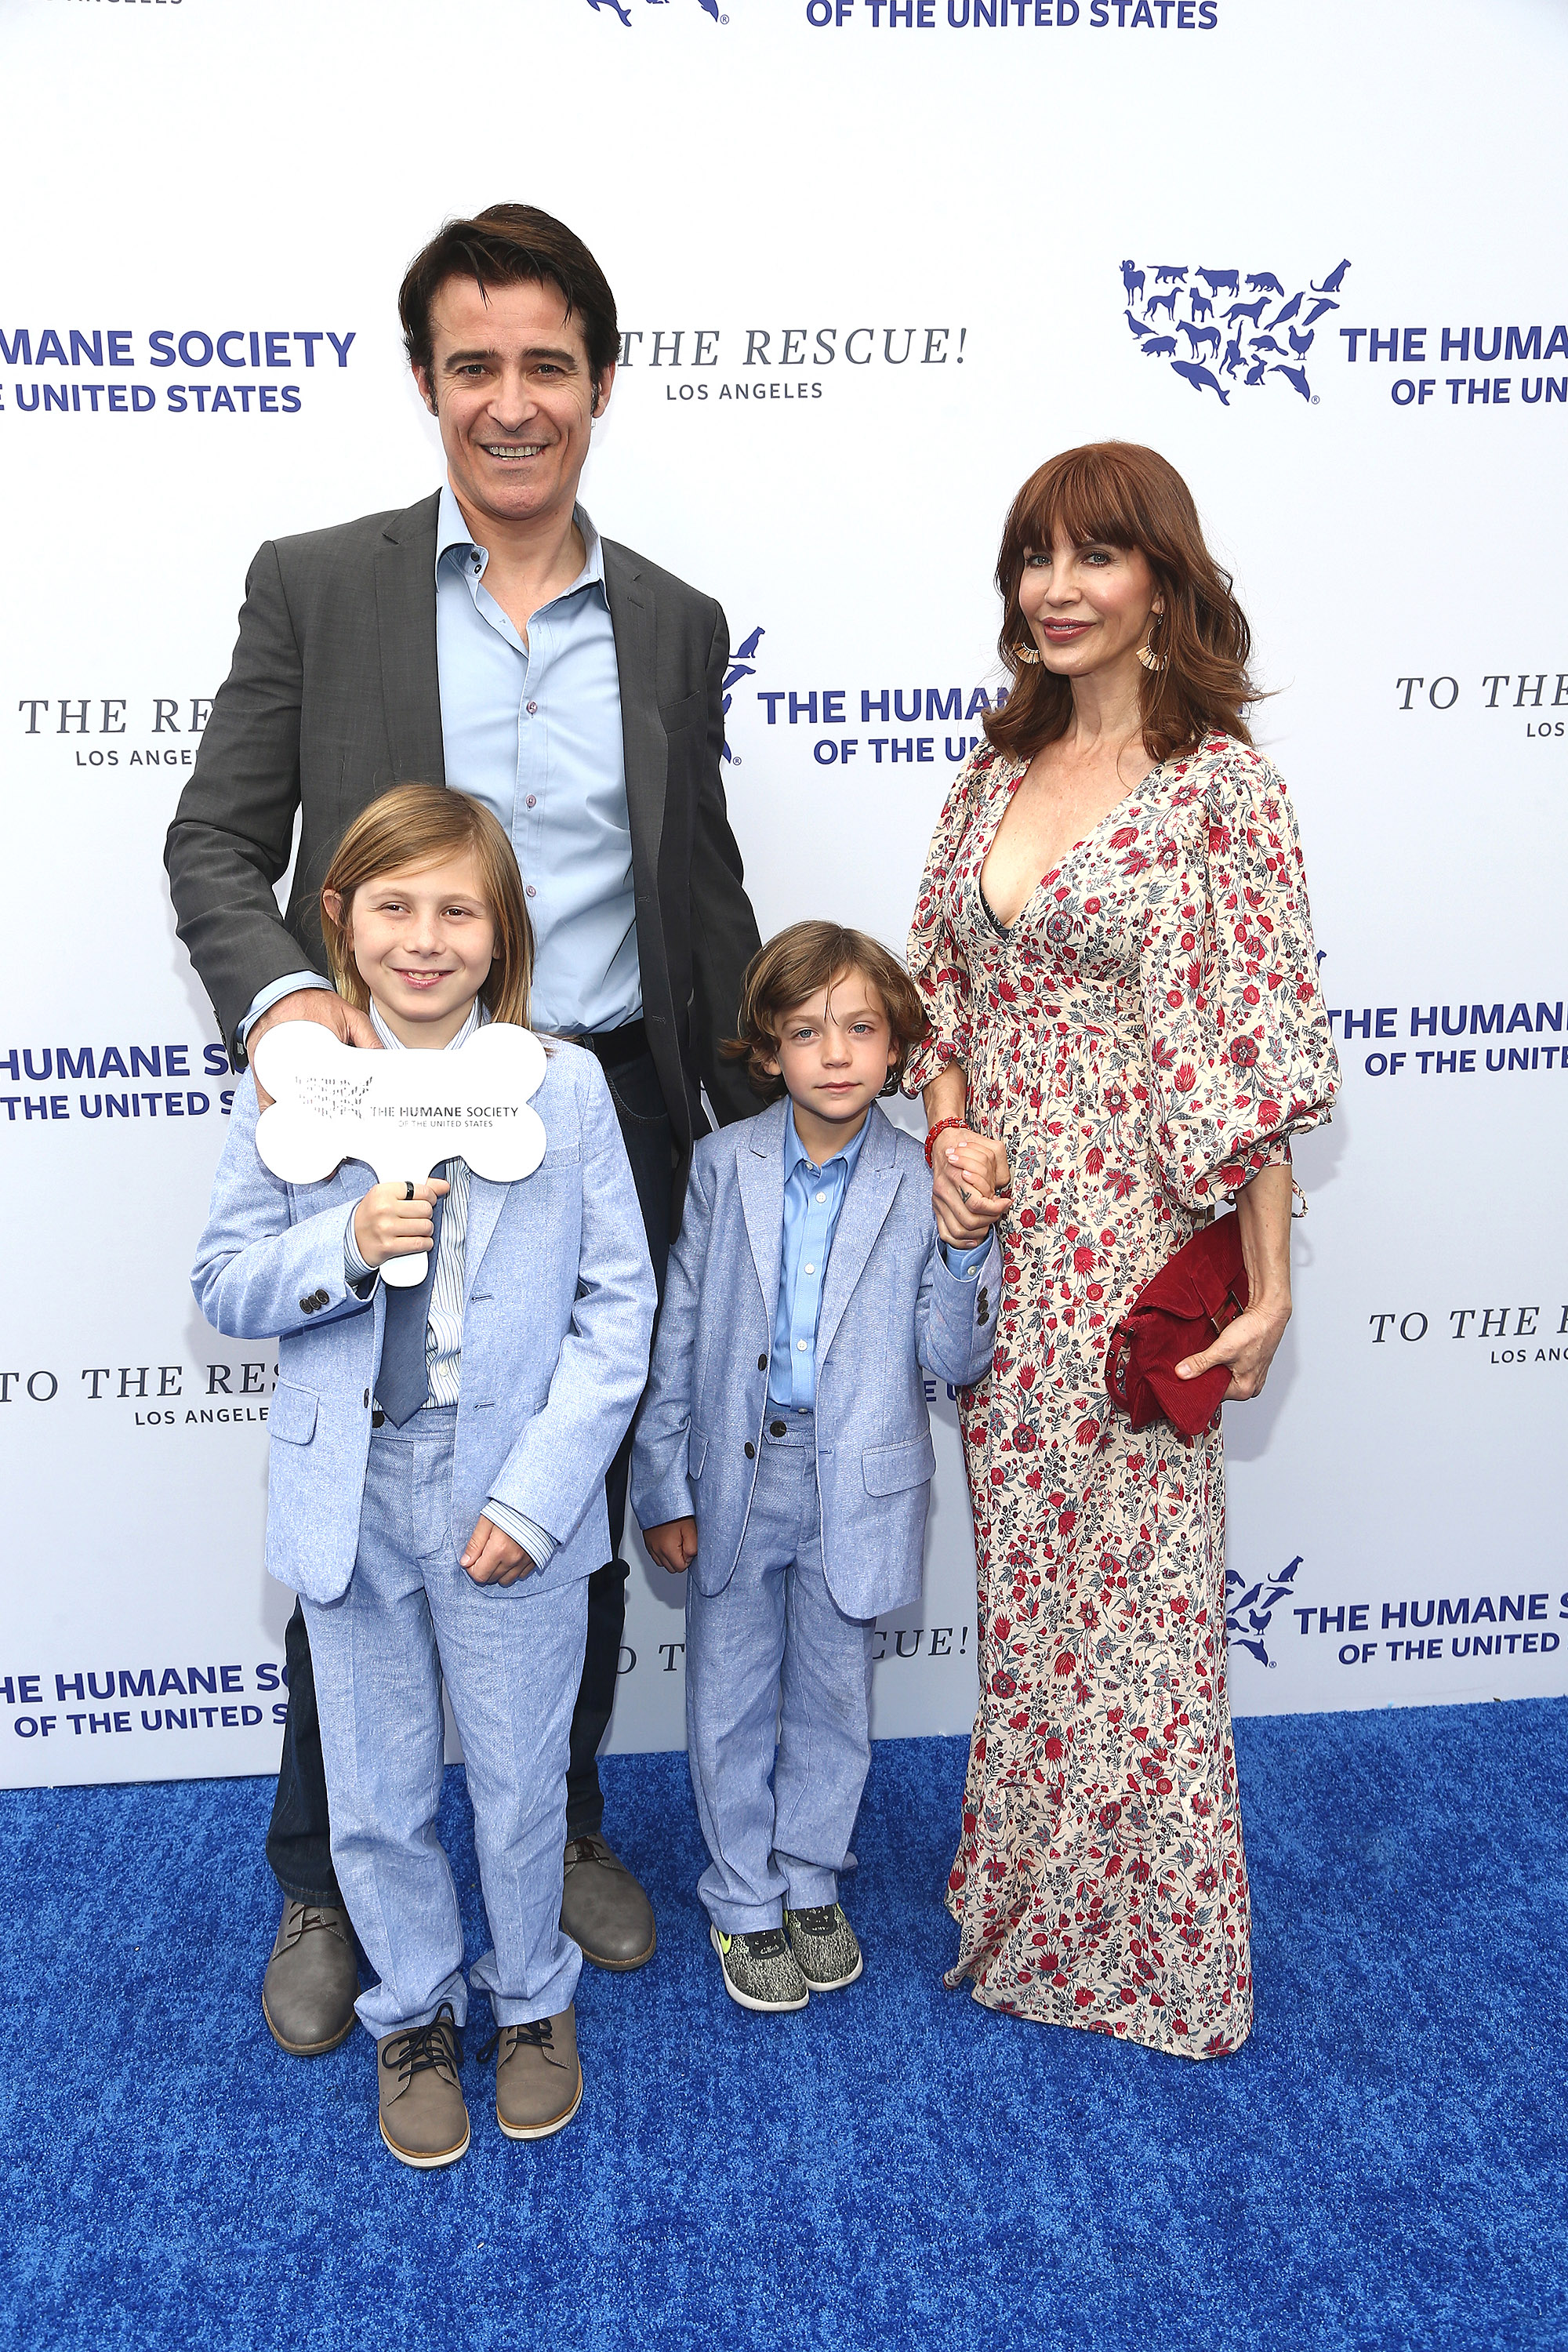 LOS ANGELES, CA - APRIL 21:  Goran Visnjic and family attend The Humane Society Of The United States' To The Rescue! Los Angeles Gala at Paramount Studios on April 21, 2018 in Los Angeles, California.  (Photo by Tommaso Boddi/Getty Images)